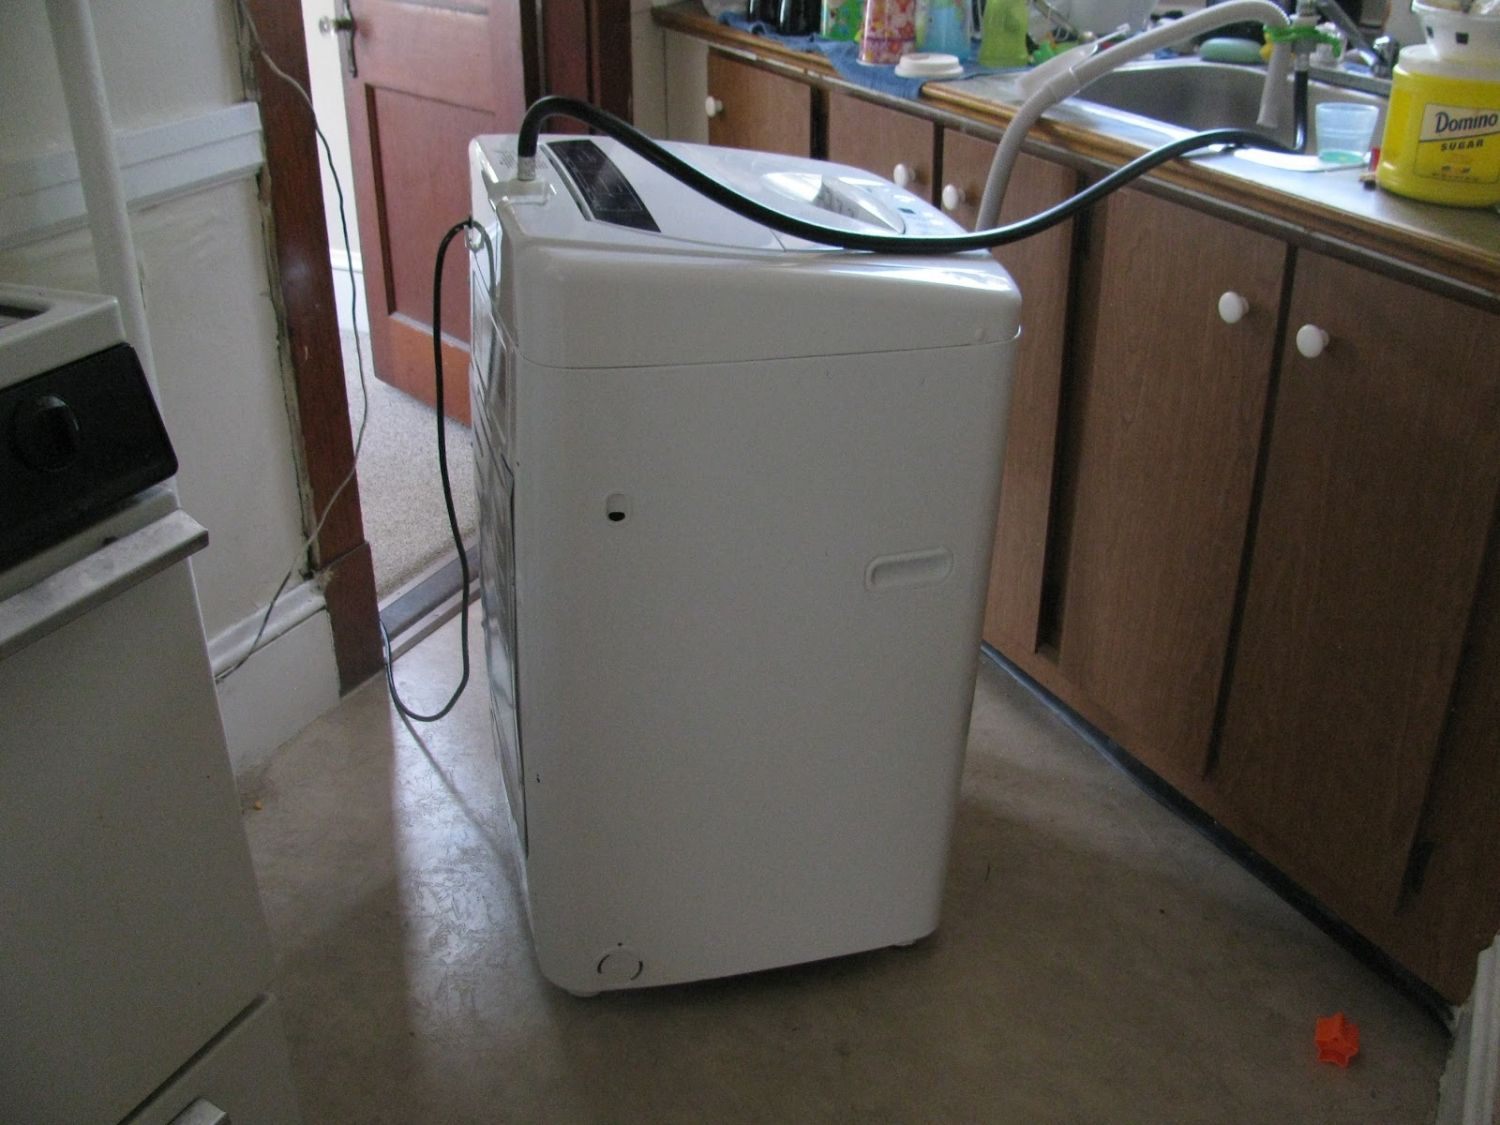 Washer That Hooks Up To Kitchen Sink Small Kitchen Remodel Ideas On A Budget Check More At Http Www Entrop Portable Washing Machine Washing Machine Washing